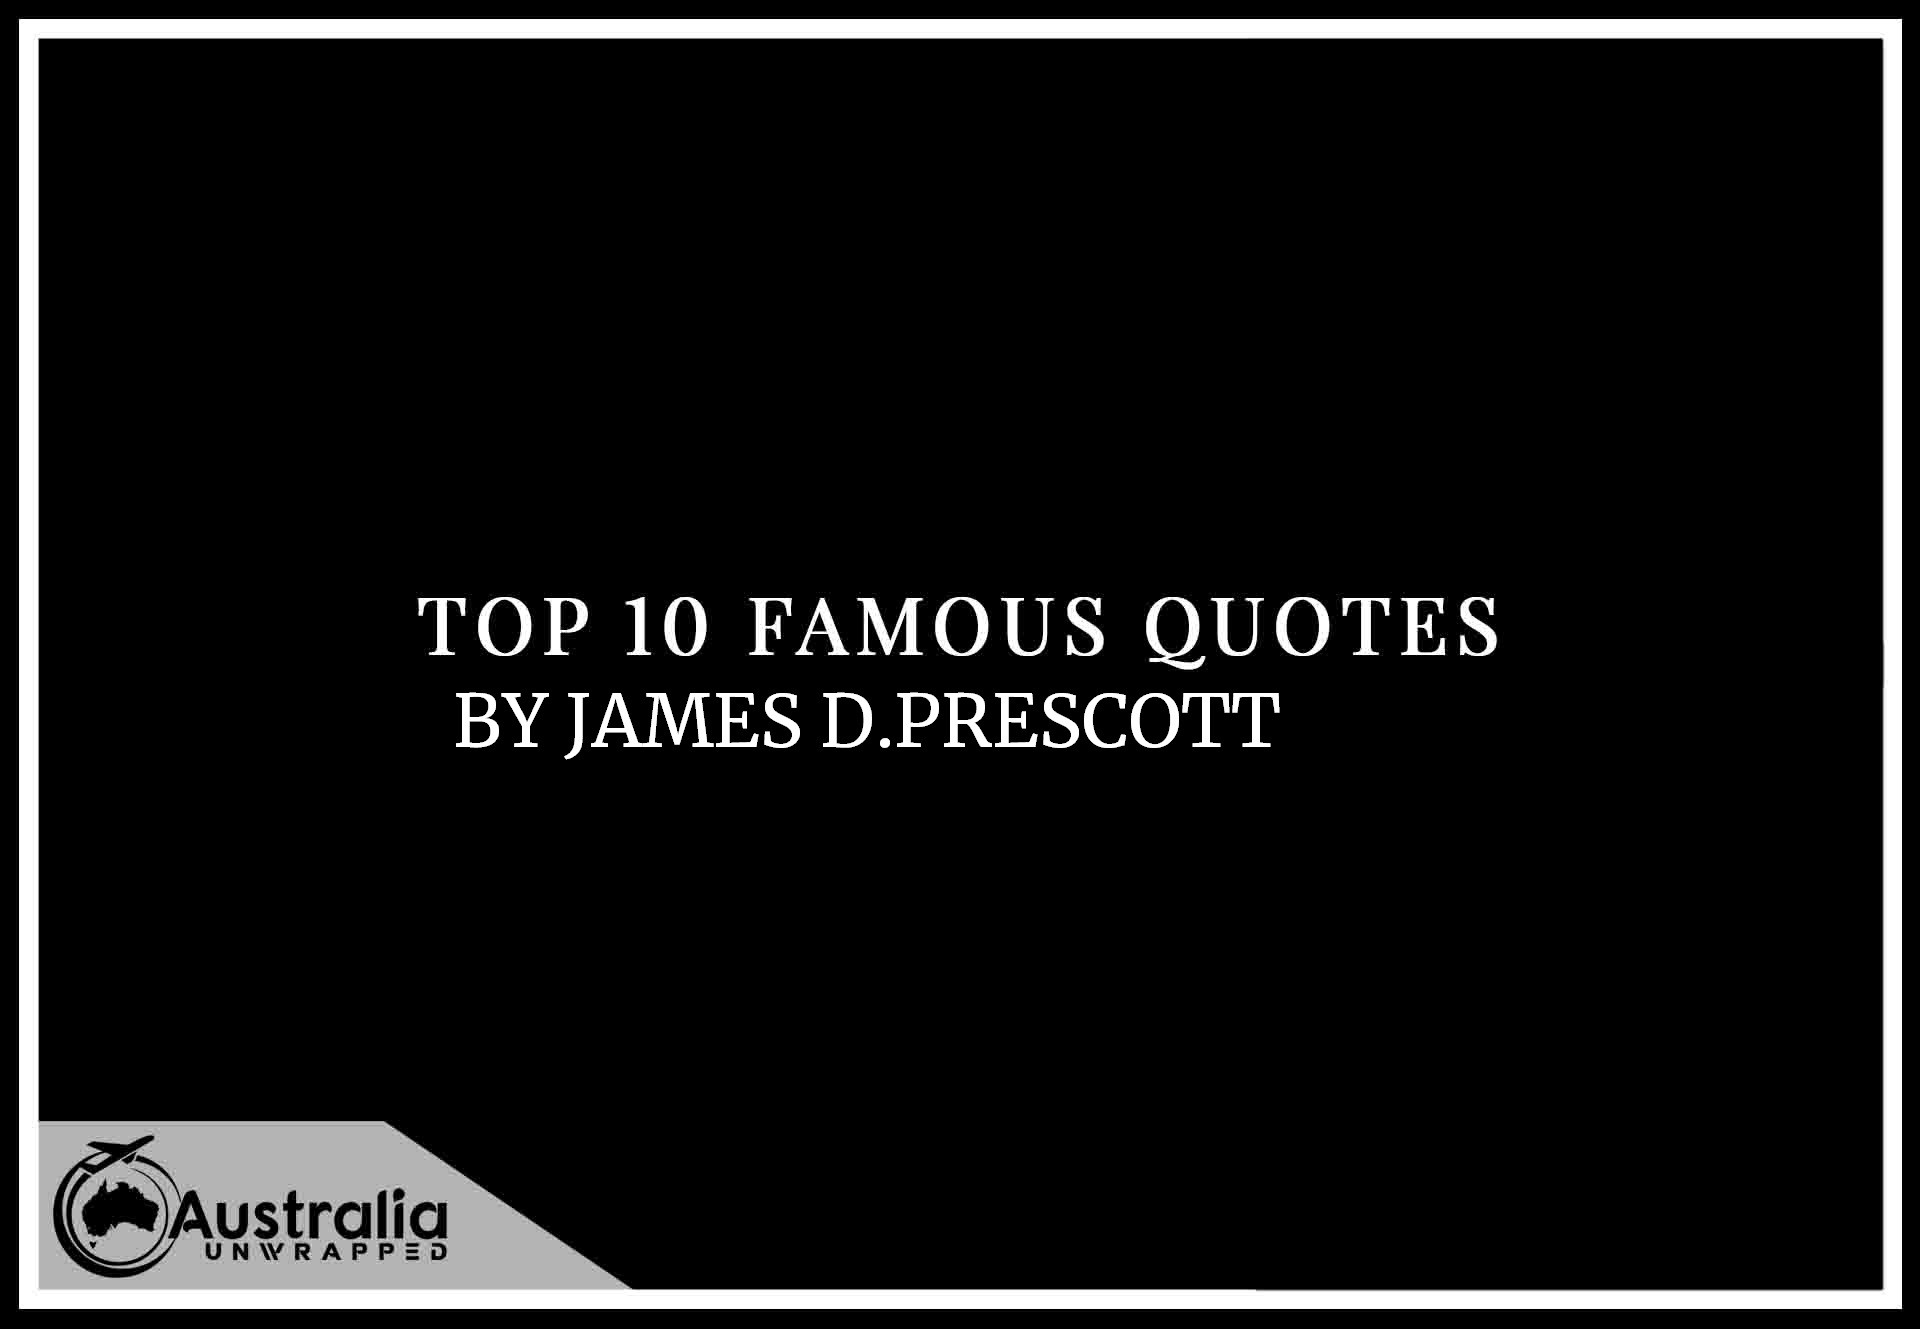 Top 10 Famous Quotes by Author James D. Prescott